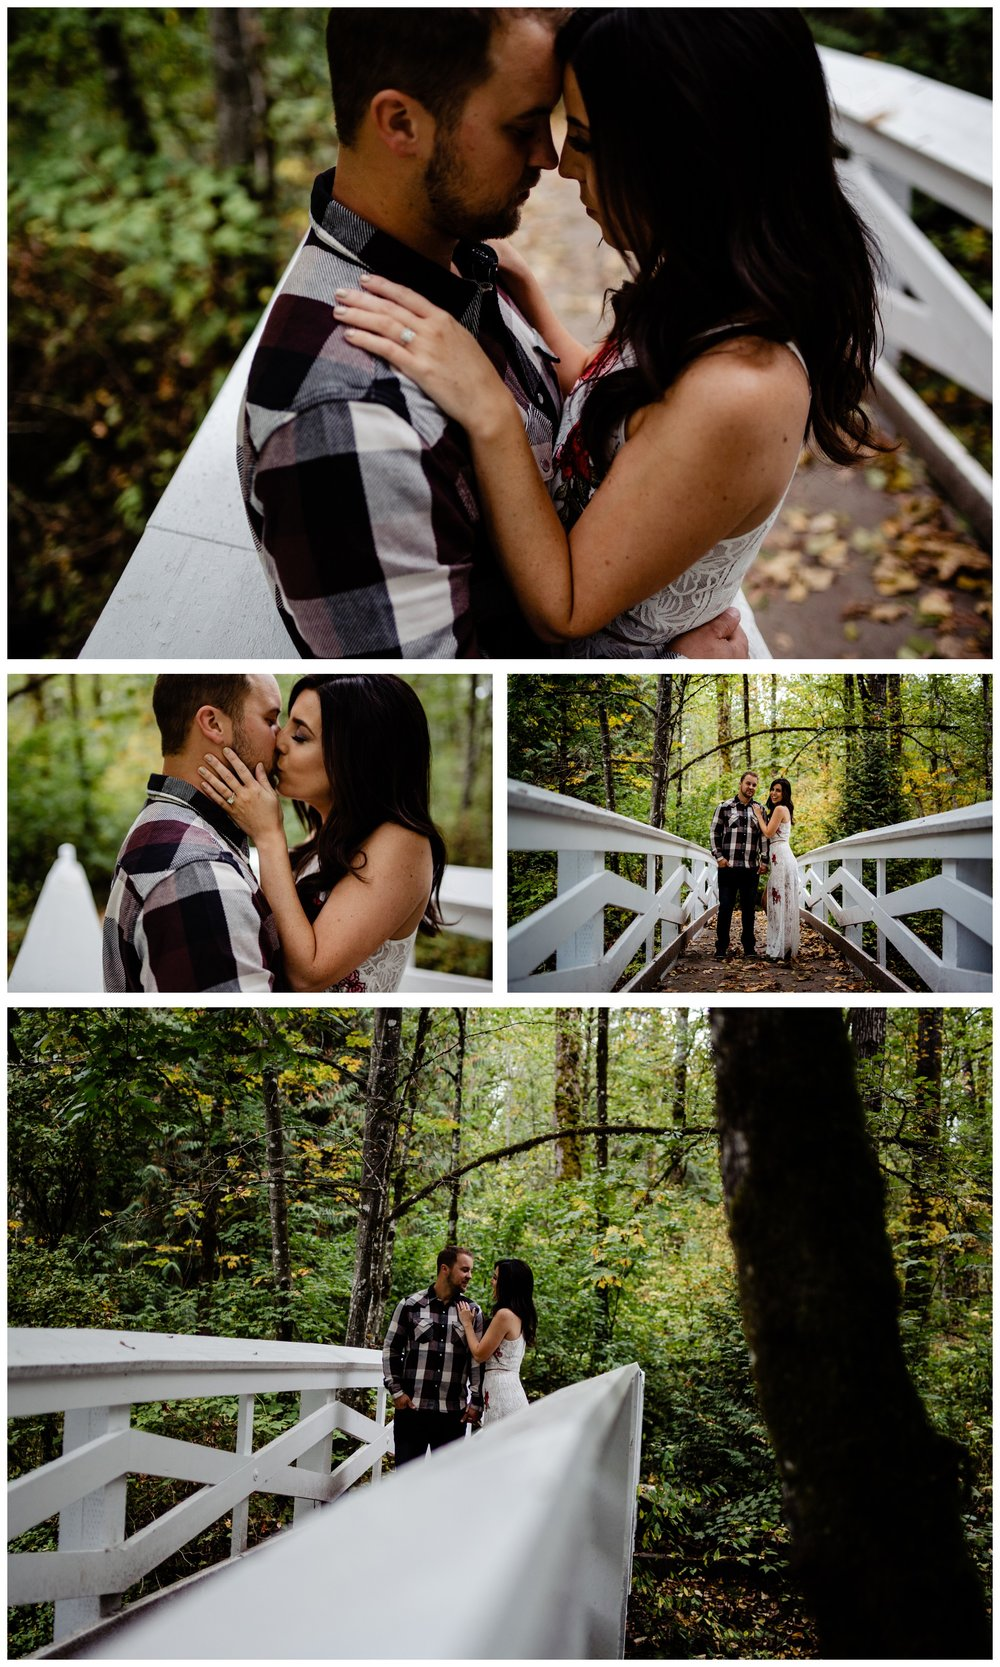 Williams Park Aldergrove Engagement Photographer Moody Fall Couple River Water Romantic Pose Yellow Leaves White Dress Dark_0021.jpg